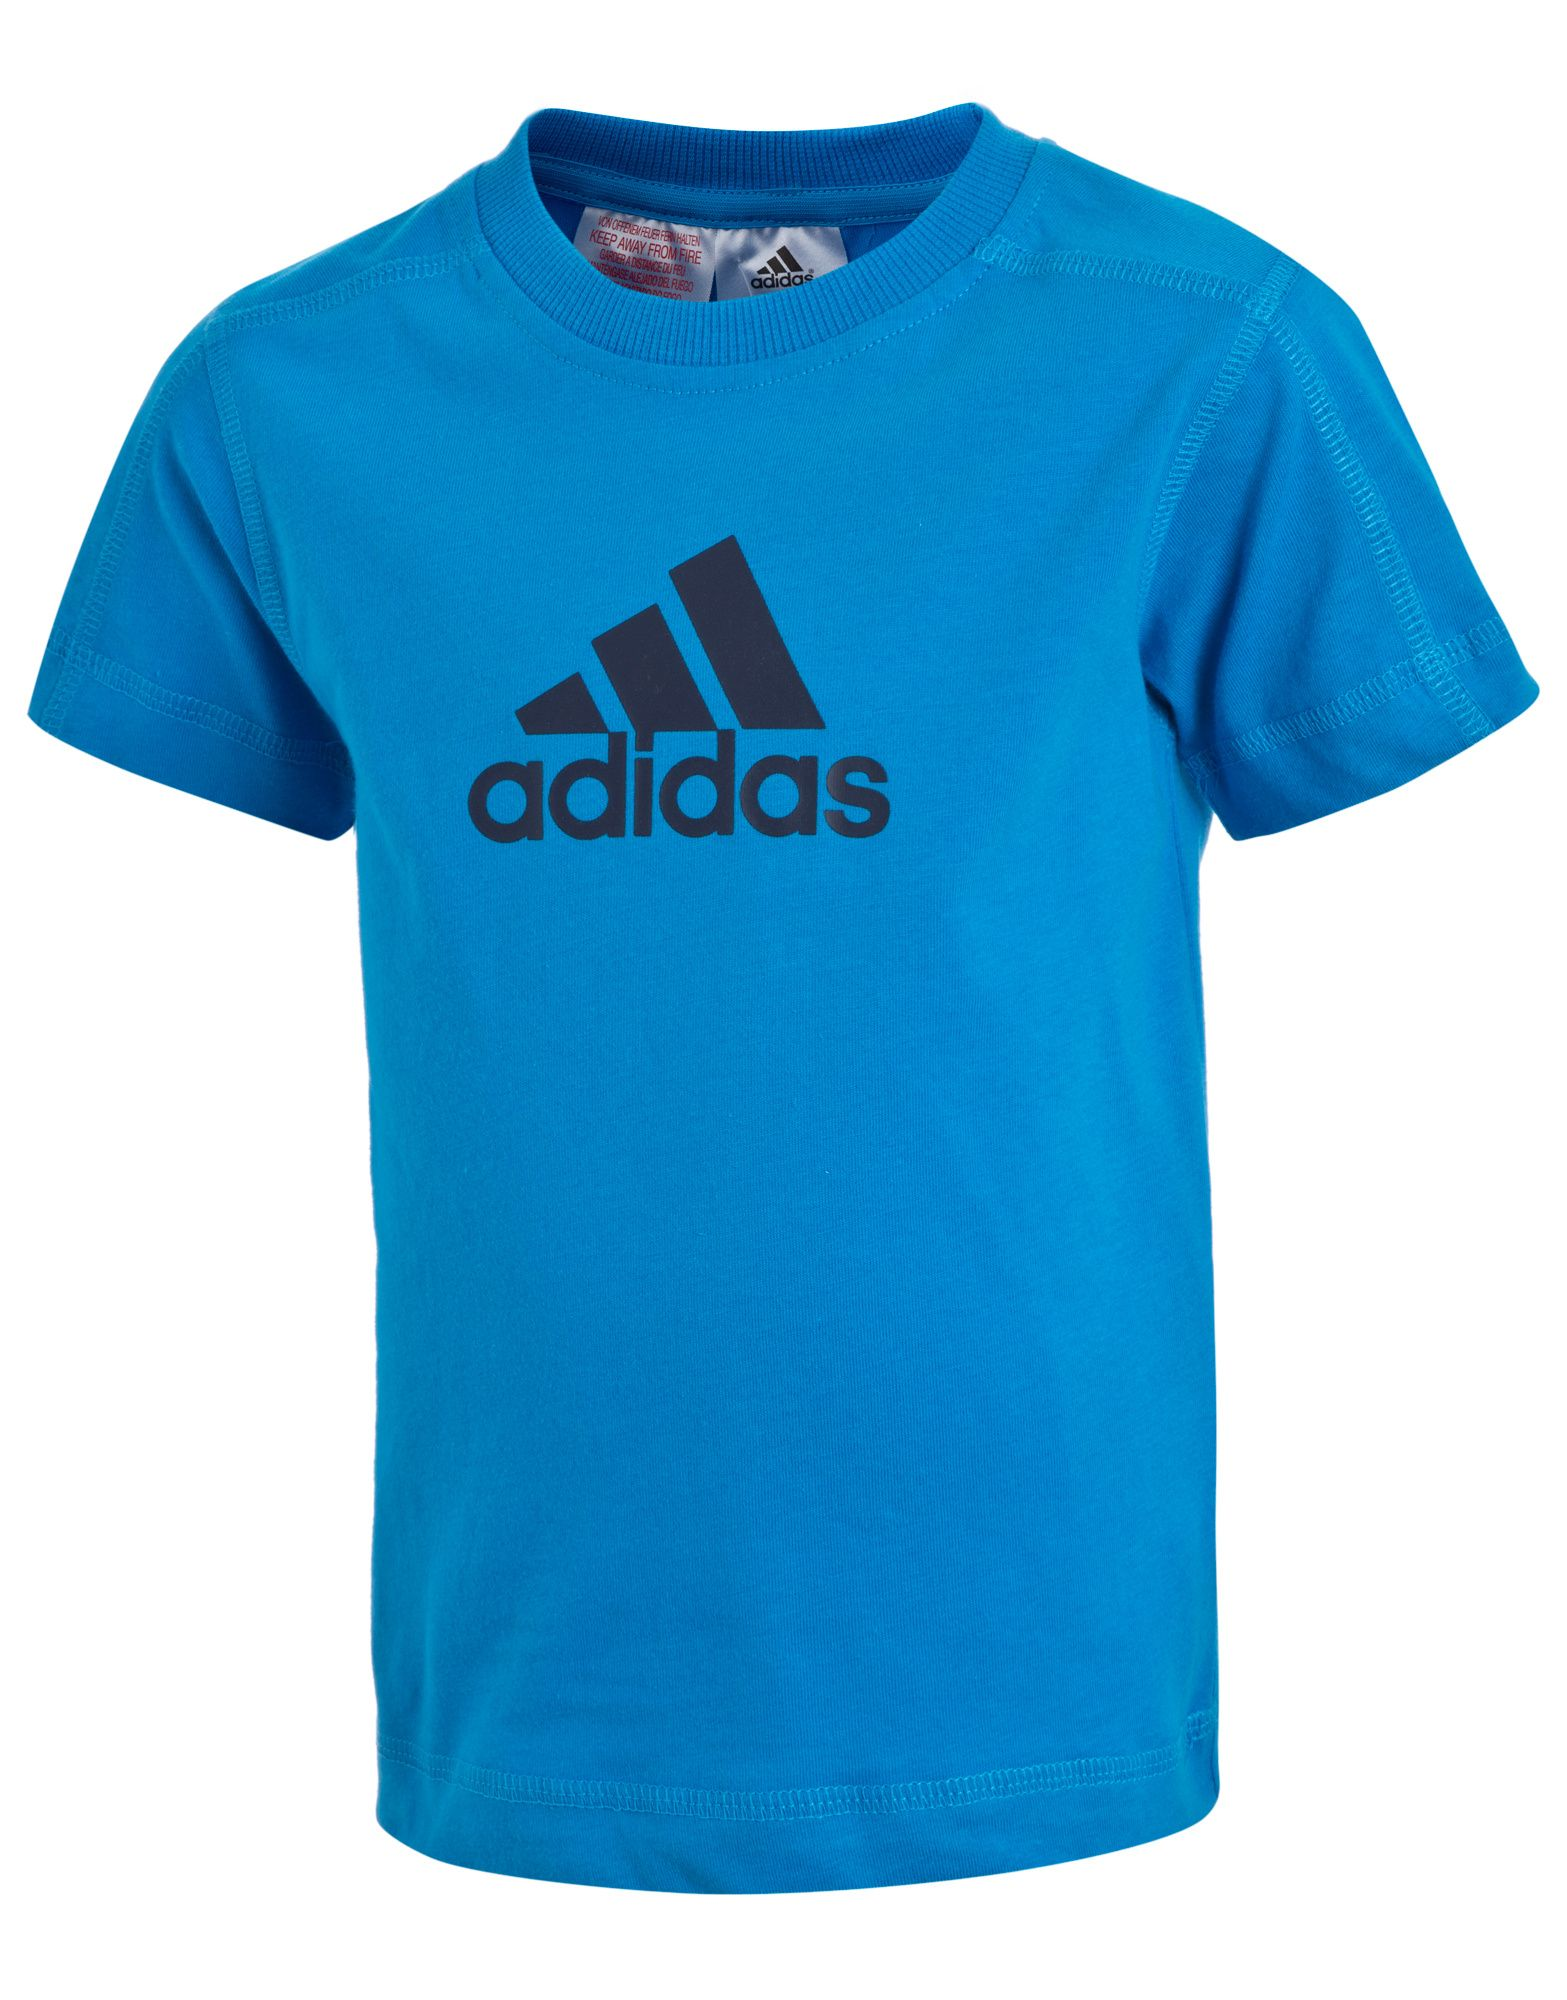 adidas Essentials Logo T-Shirt Children